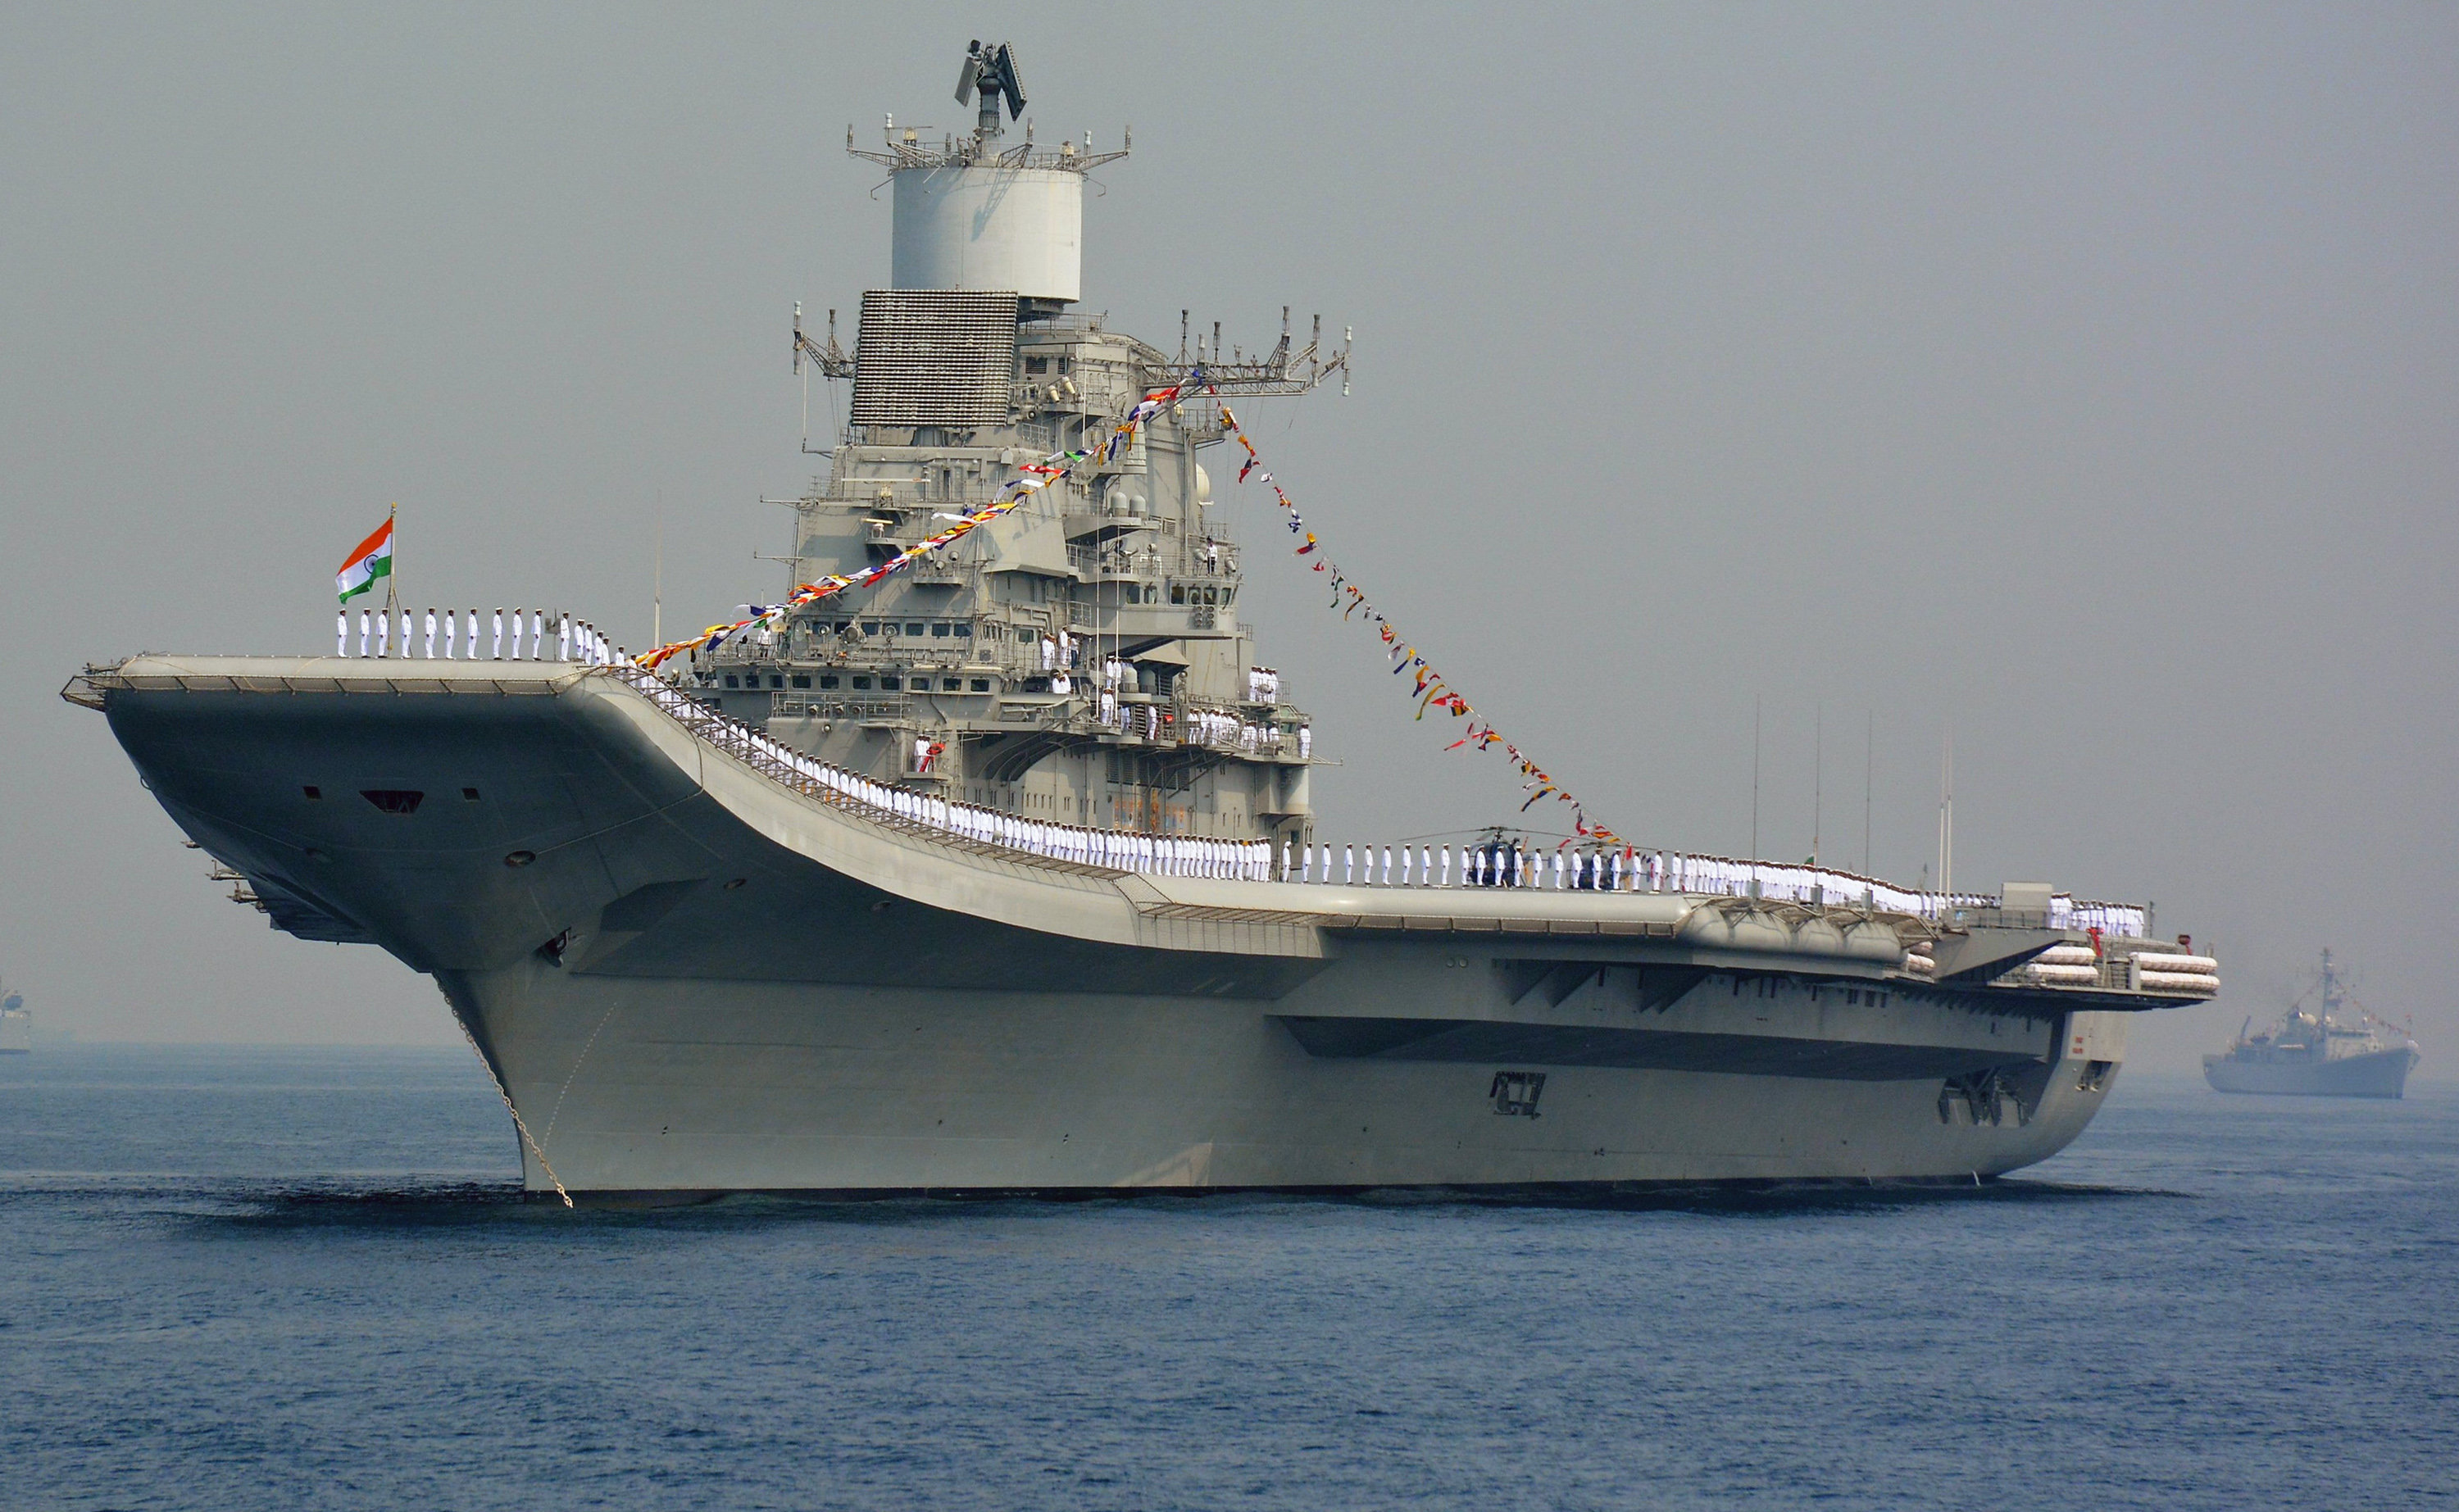 Indian Navy personnel stand on the INS Vikramaditya, a modified Kiev-class aircraft carrier, during the International Fleet Review in Visakhapatnam on February 6, 2016